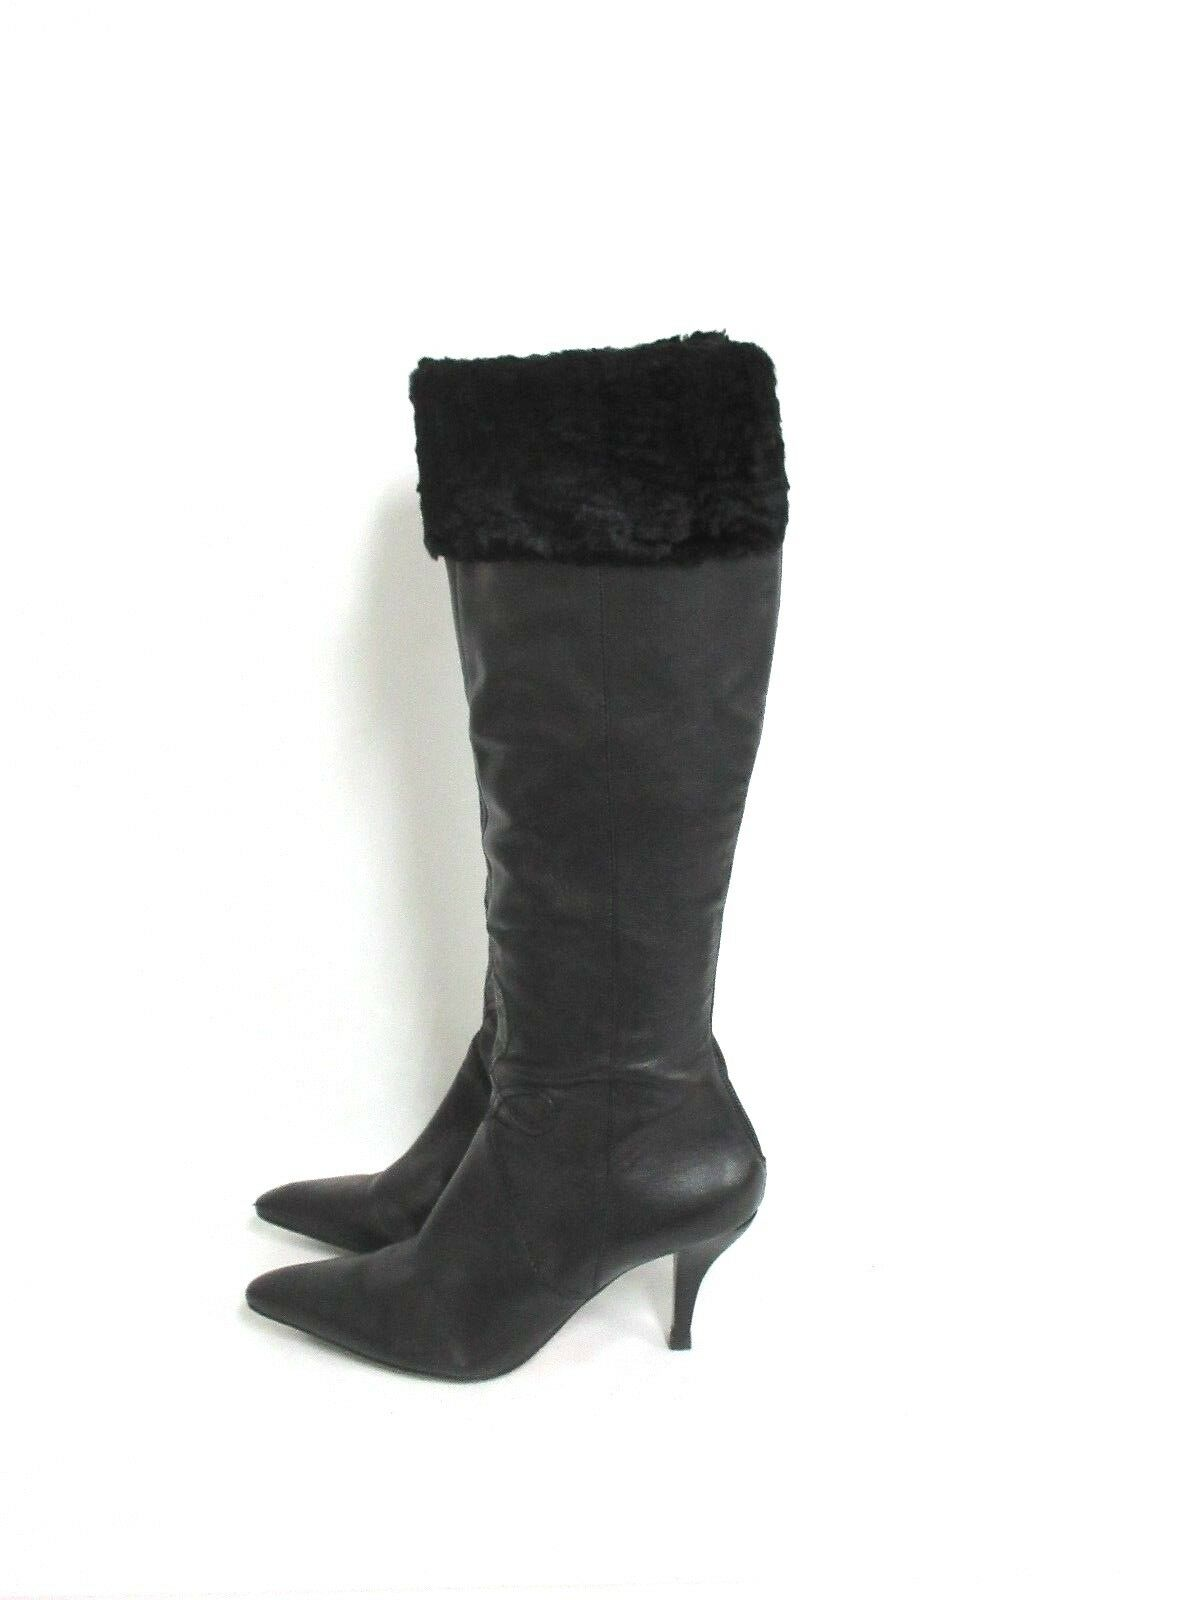 Arturo Chiang Women's Limonta High Shaft Boot with Fur Cuff Black Size: 6.5M